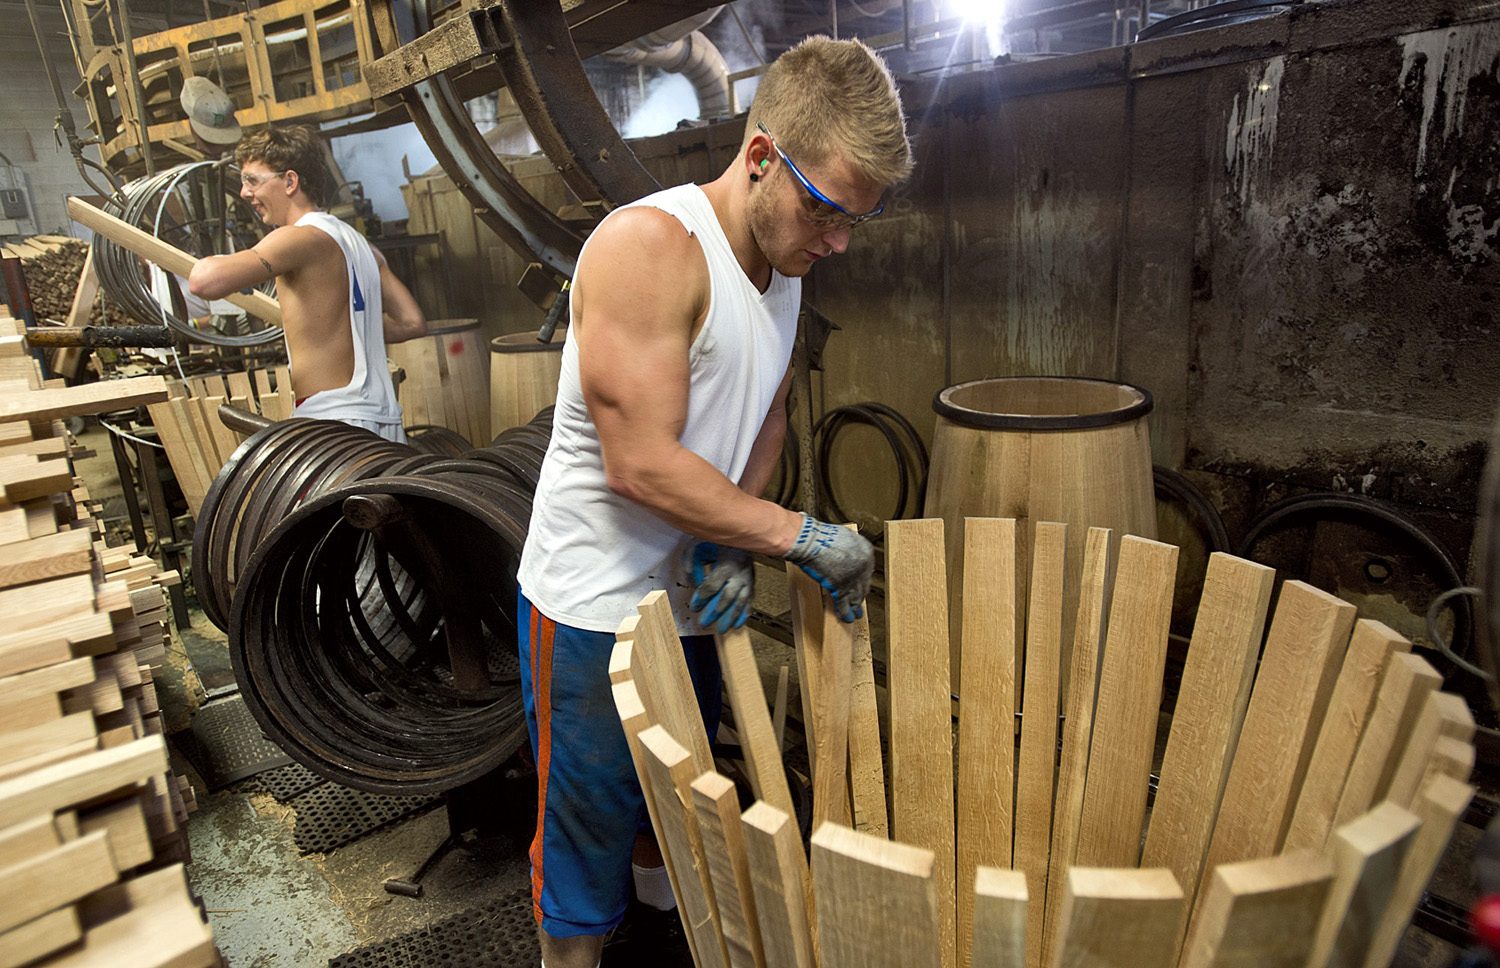 Artisanal products have helped spark a run on oak barrels